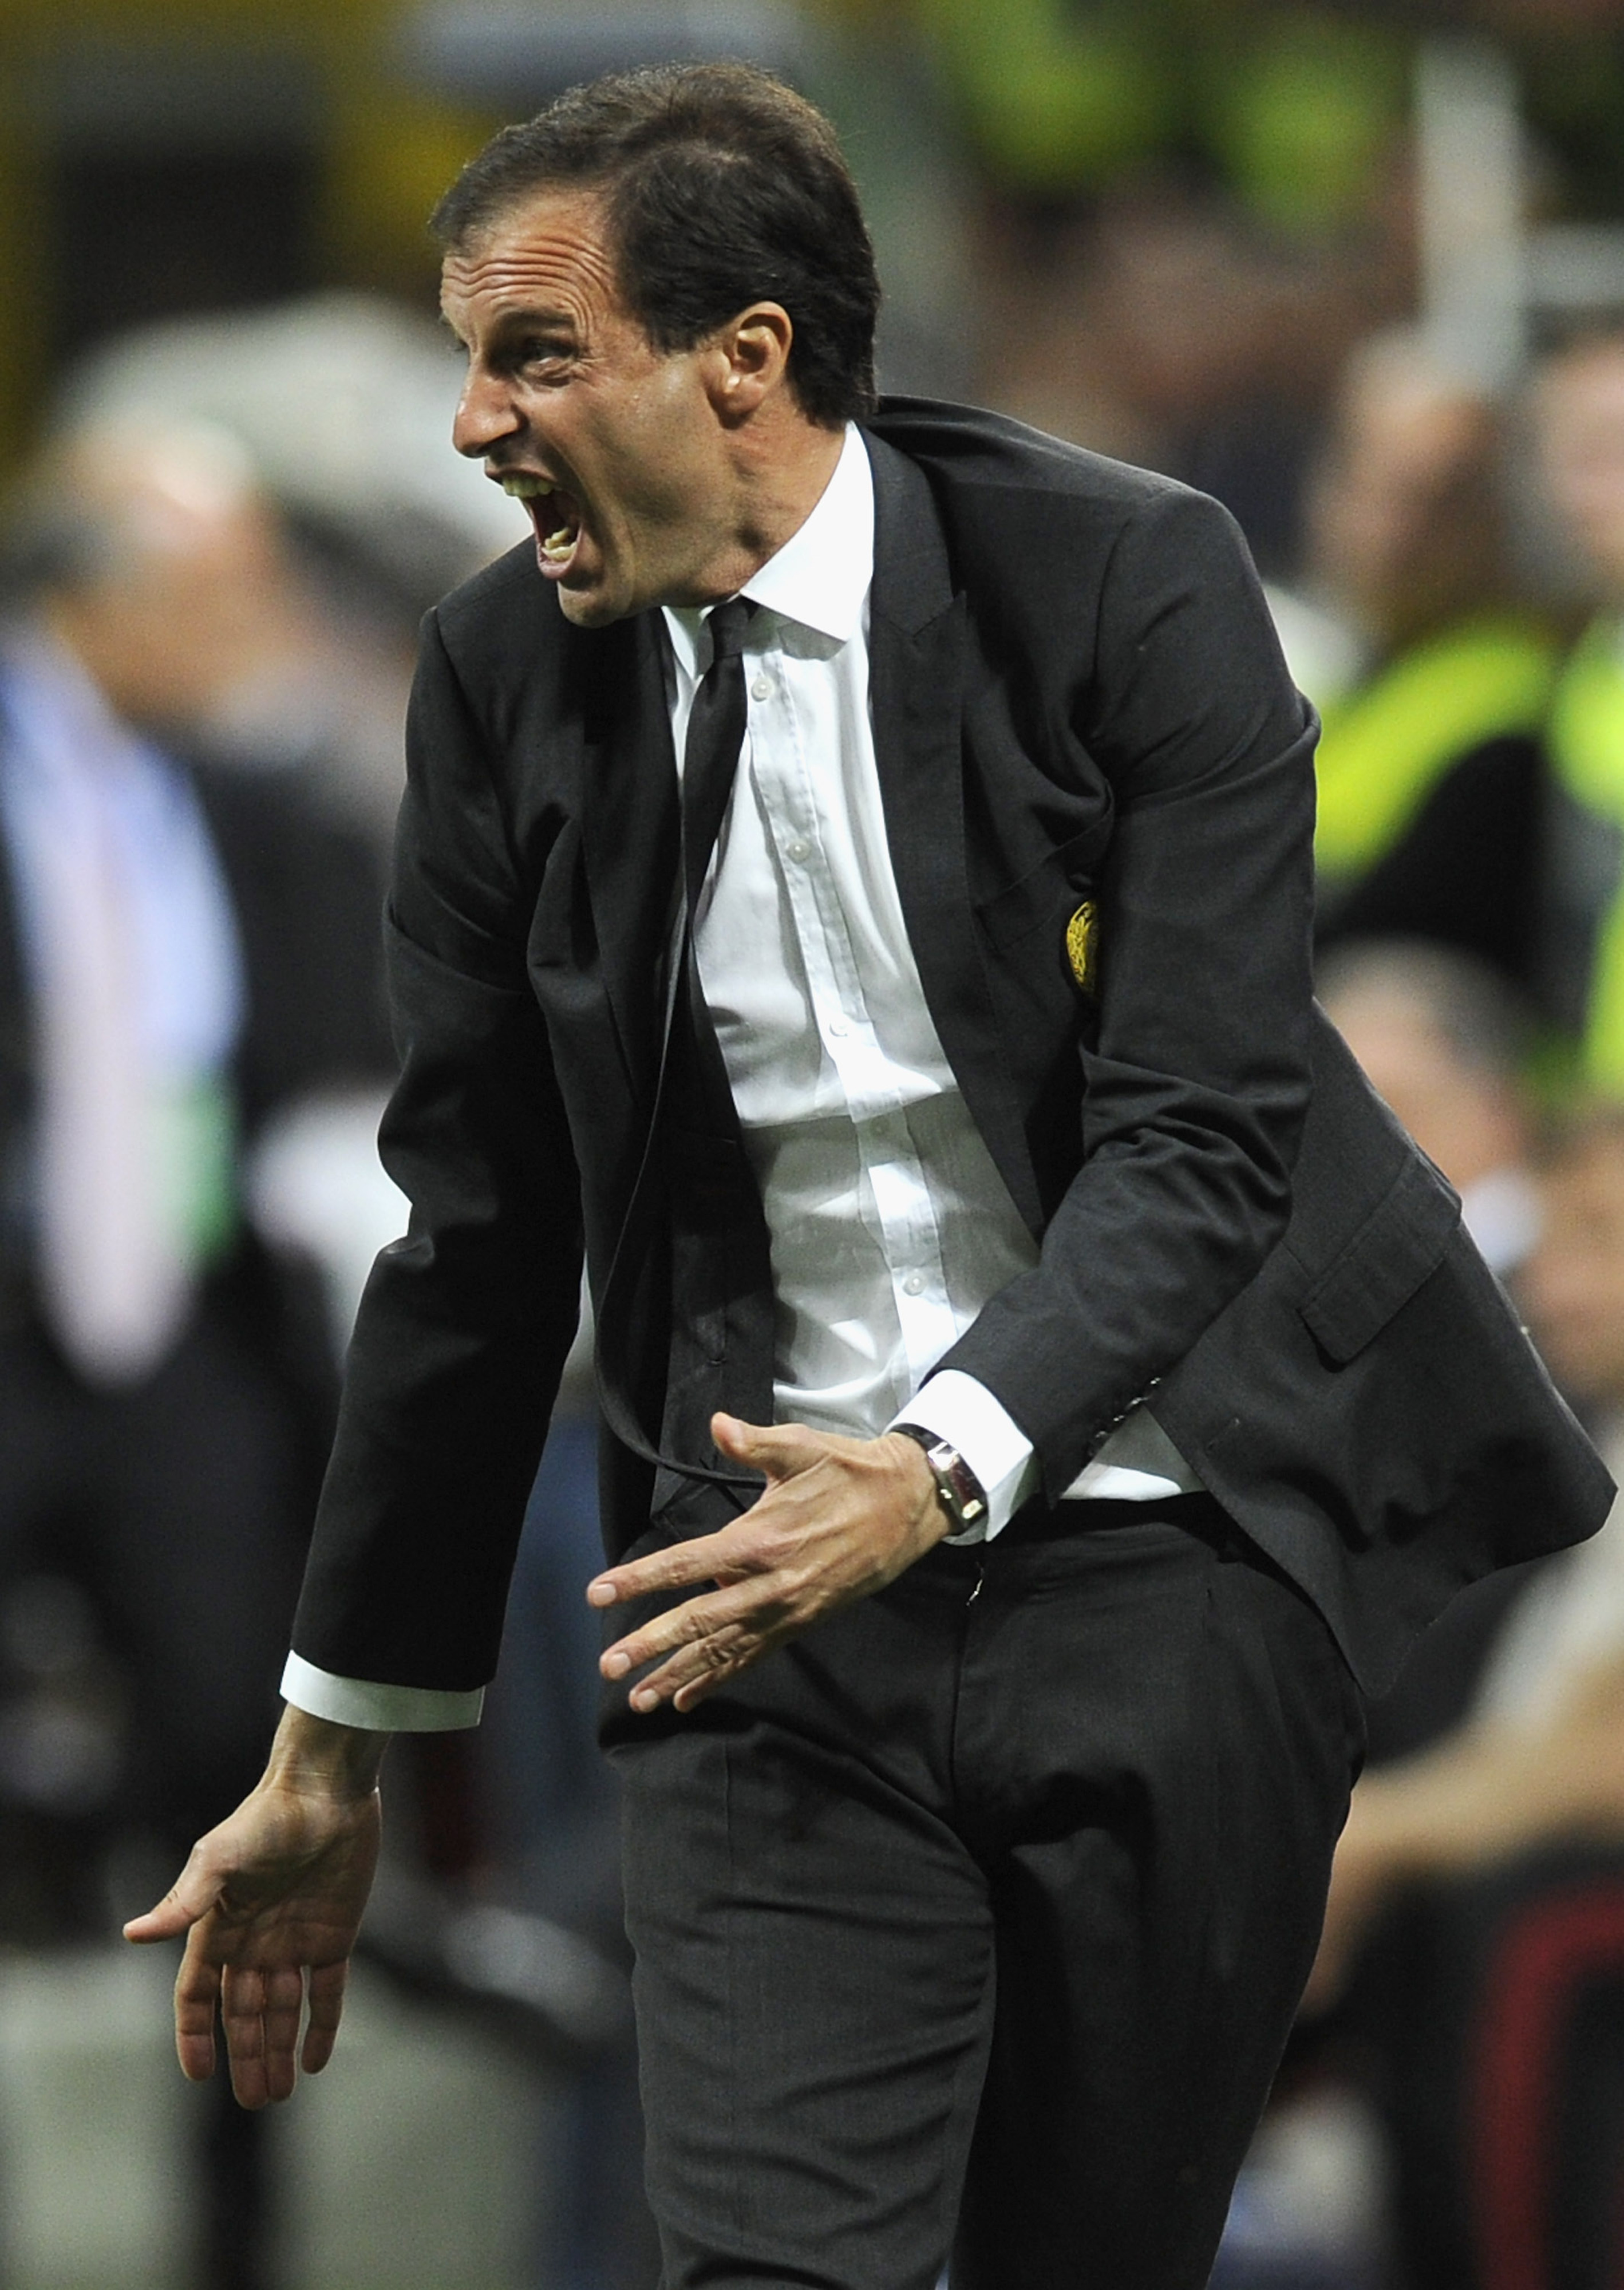 AC Milan announce that Massimiliano Allegri will stay as coach